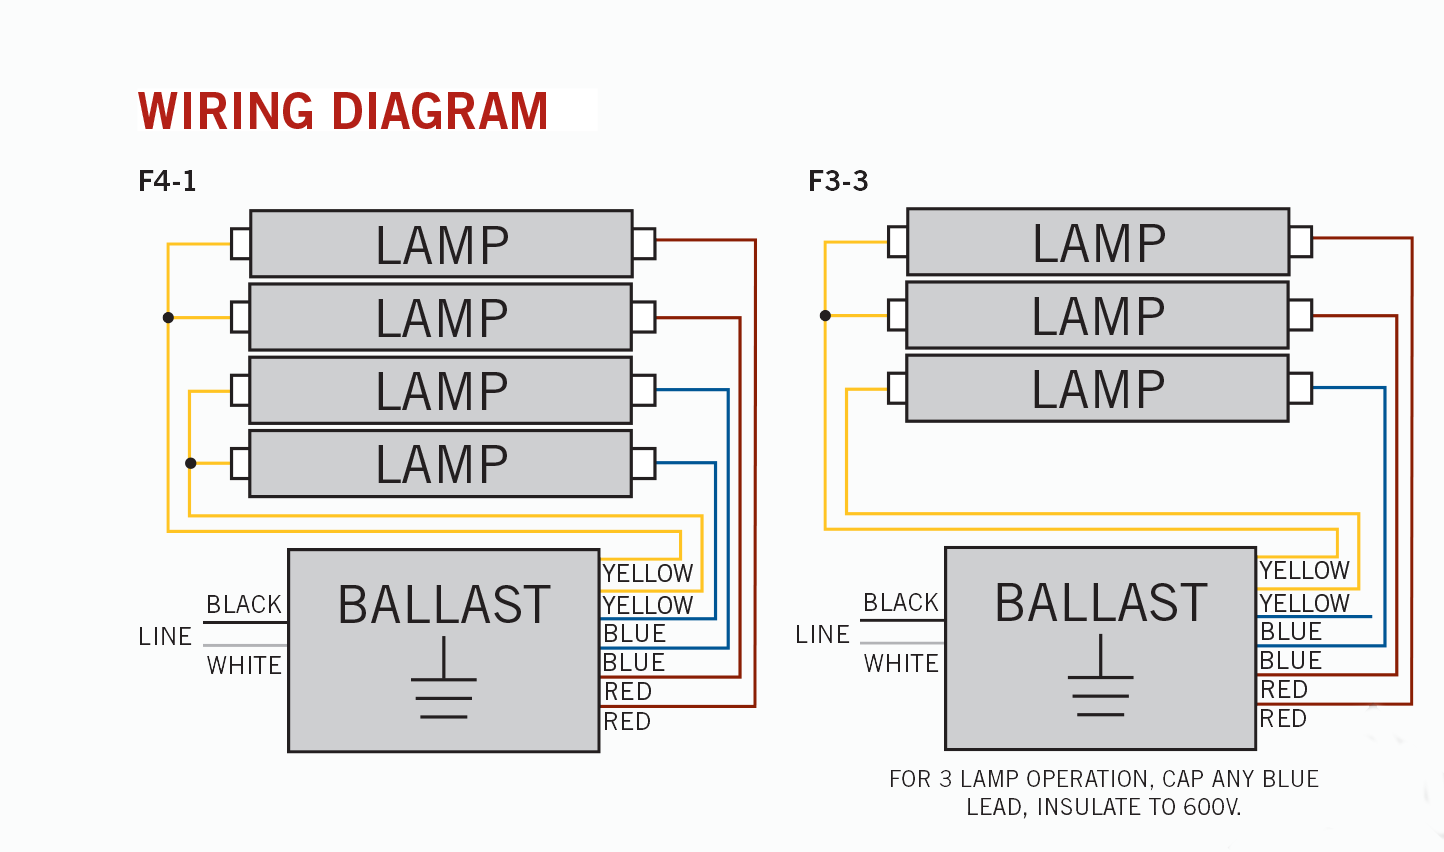 [SCHEMATICS_4PO]  DN_7760] Light Ballast Wiring Diagram On Wiring 3 Lamp Fixture With 4  Ballast Schematic Wiring | T5 4 Lamp Ballast Wiring Diagram |  | Proe Gue45 Mohammedshrine Librar Wiring 101